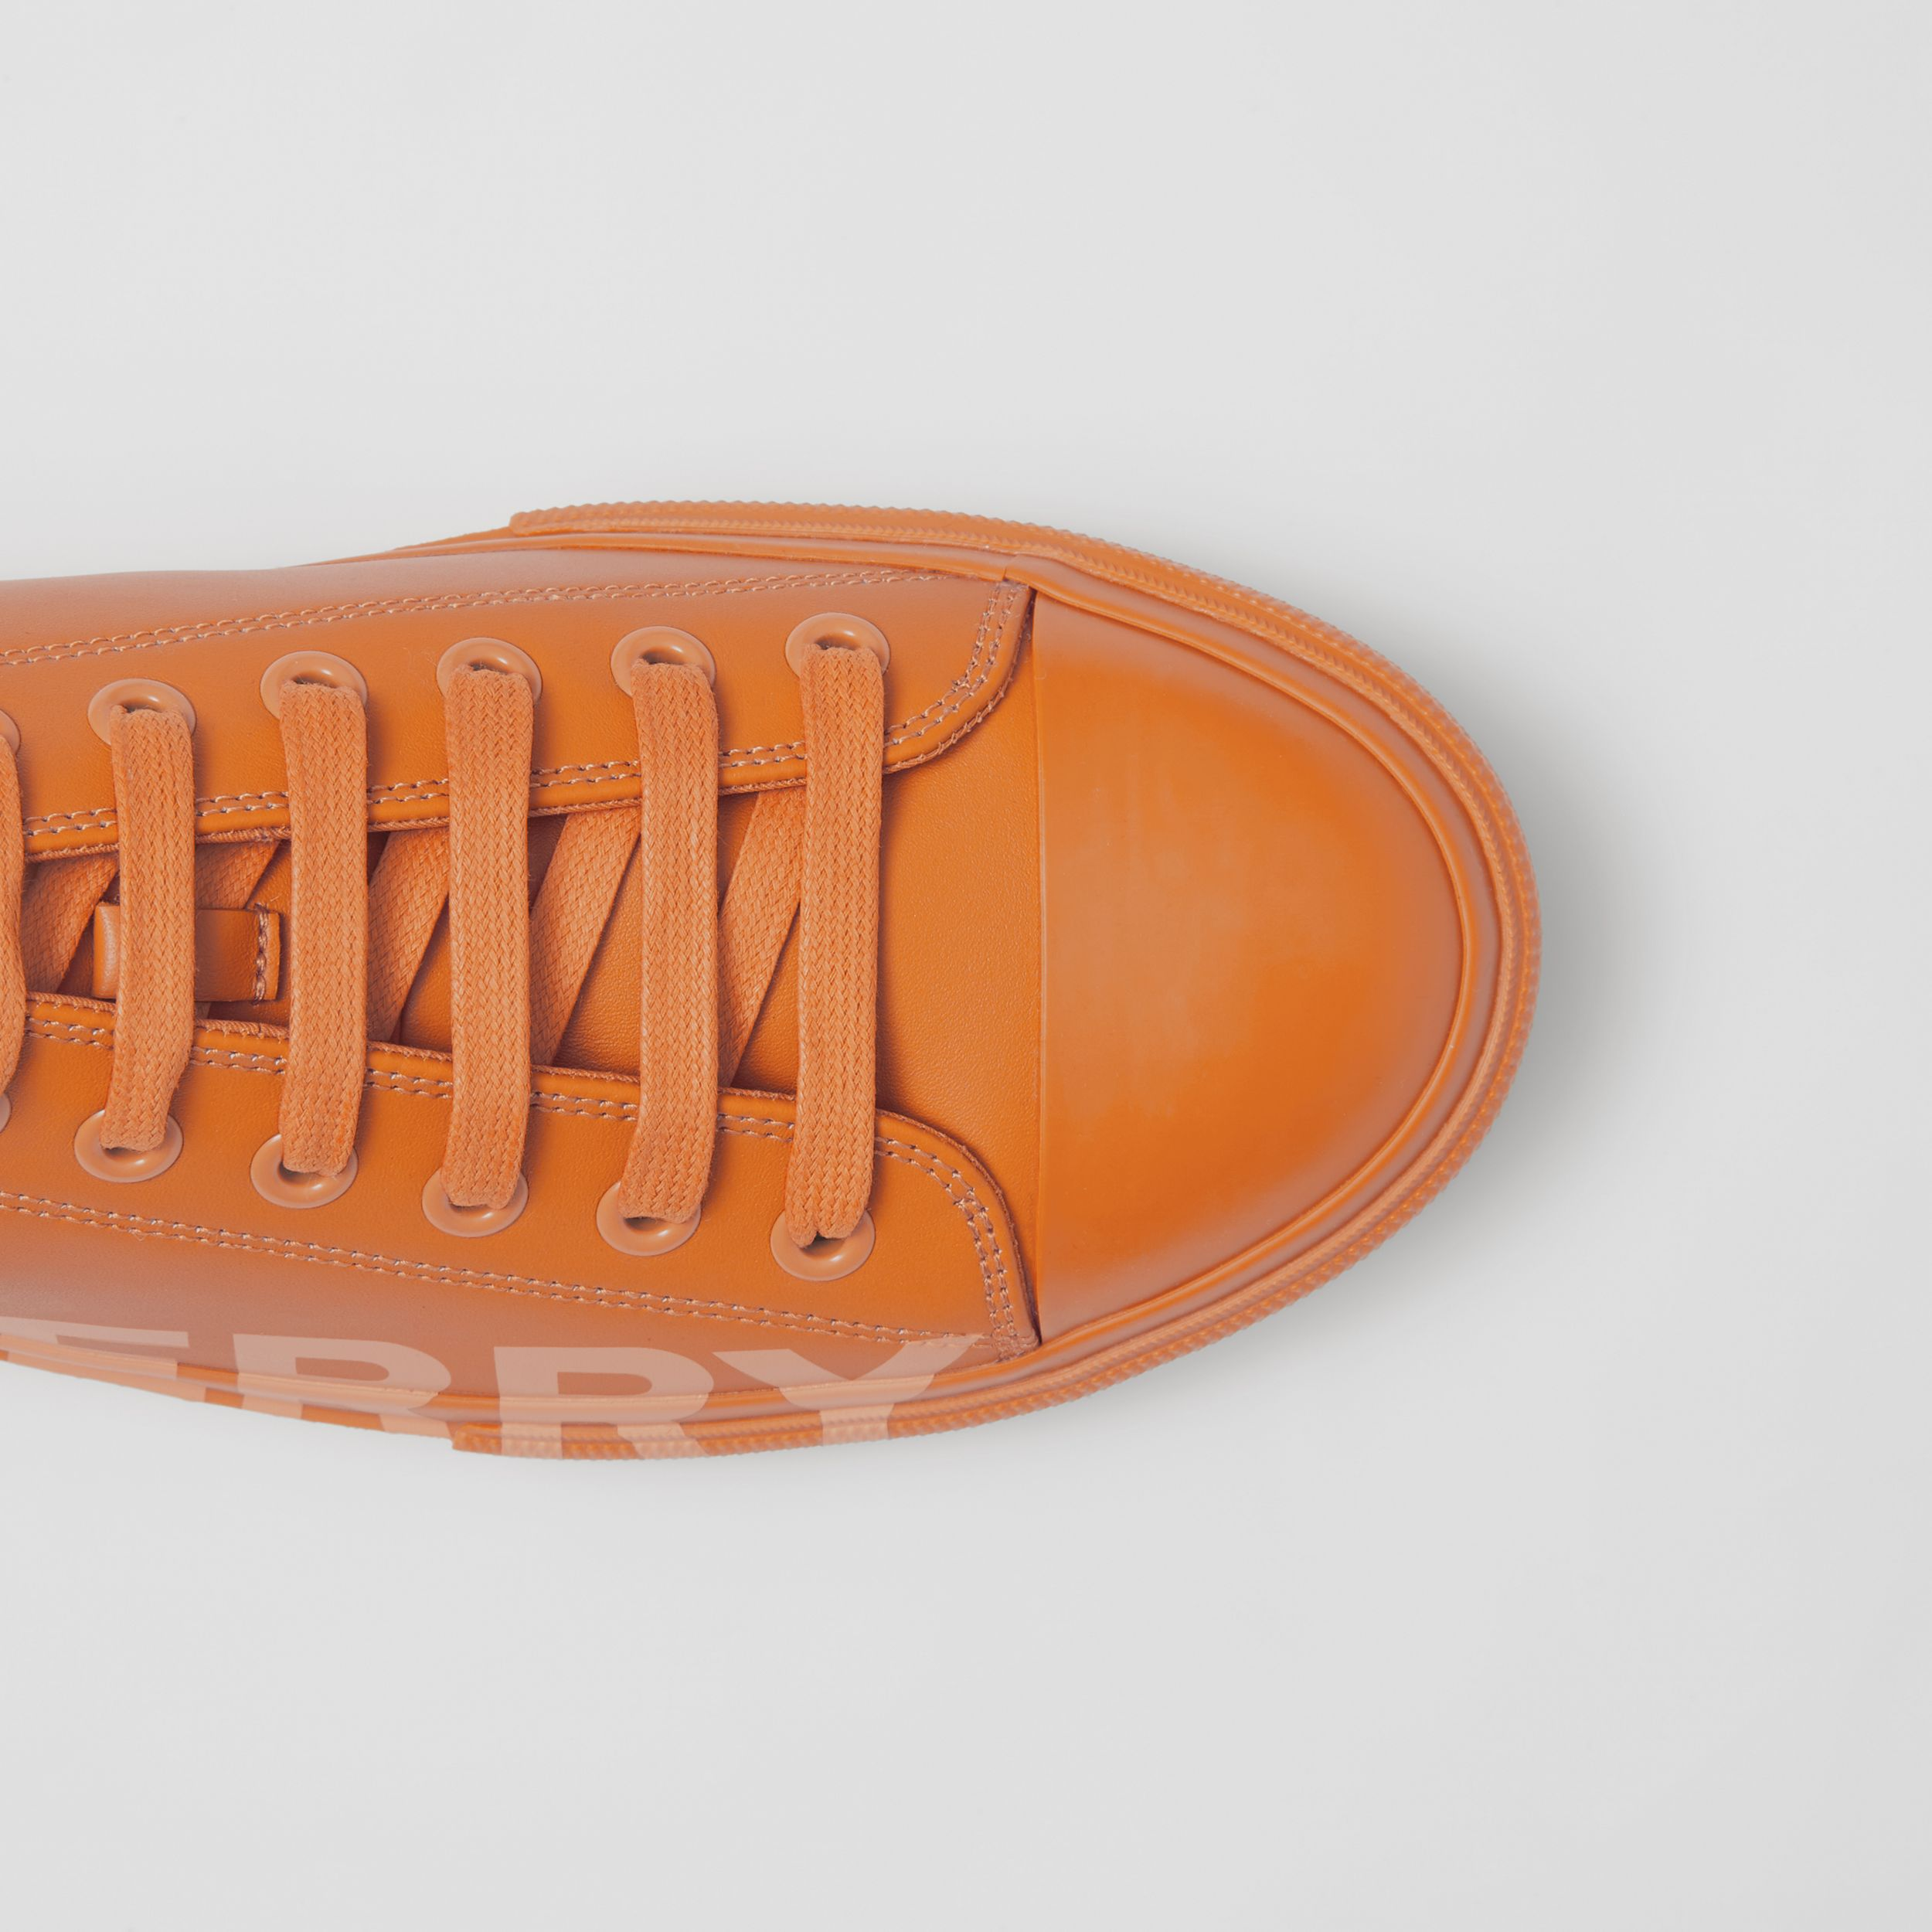 Logo Print Leather Sneakers – Online Exclusive in Deep Orange - Men | Burberry Hong Kong S.A.R. - 2